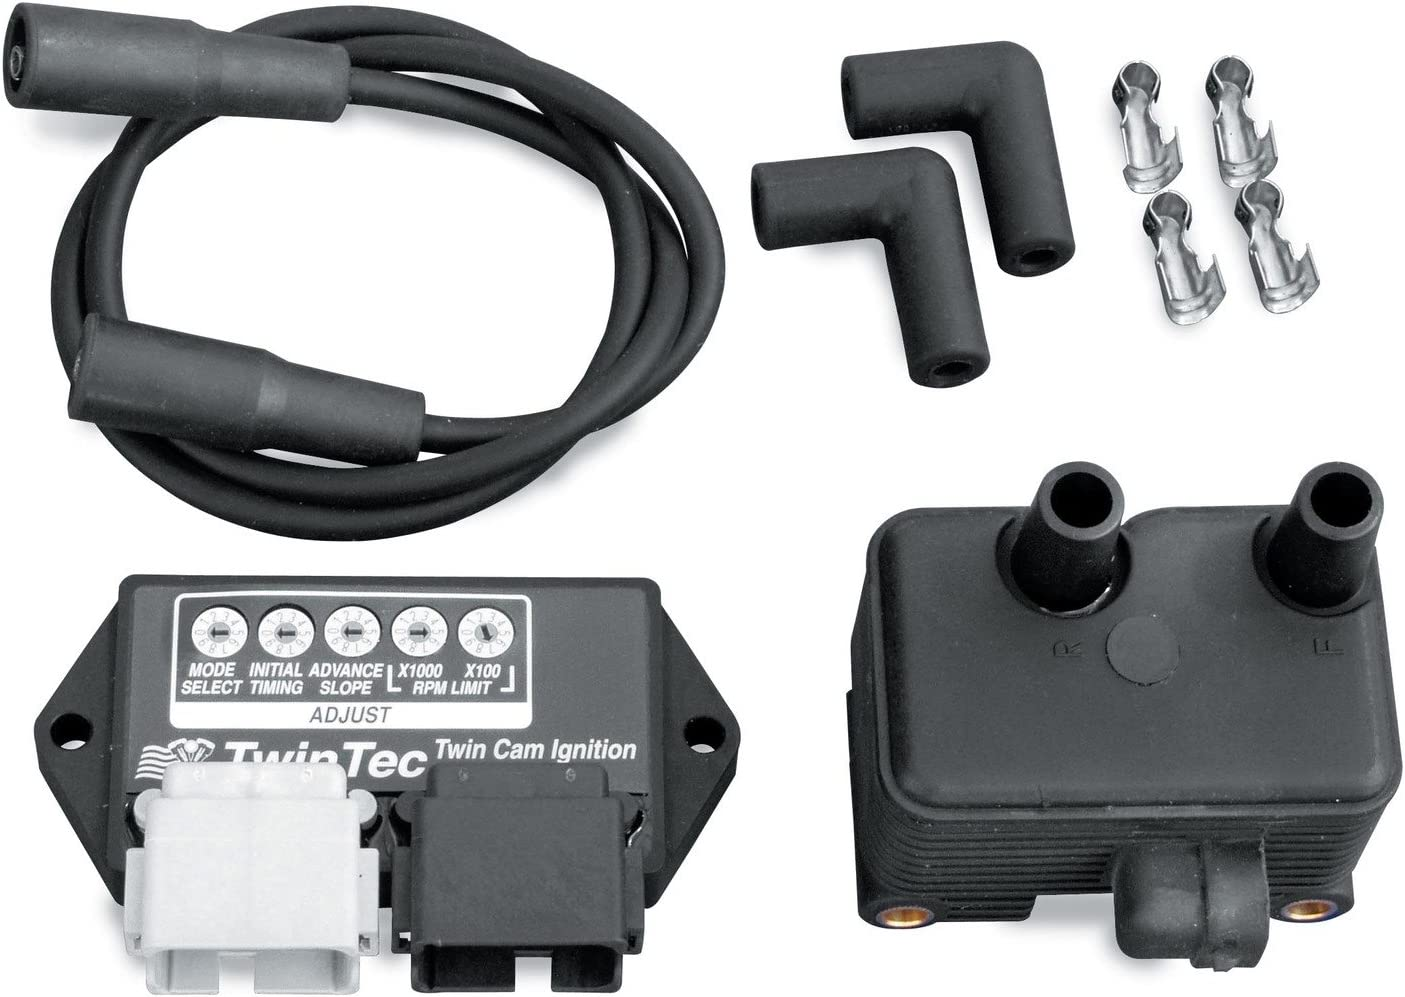 Manufacturer direct delivery Daytona Twin low-pricing Tec TC88 Kit Ignition 3008